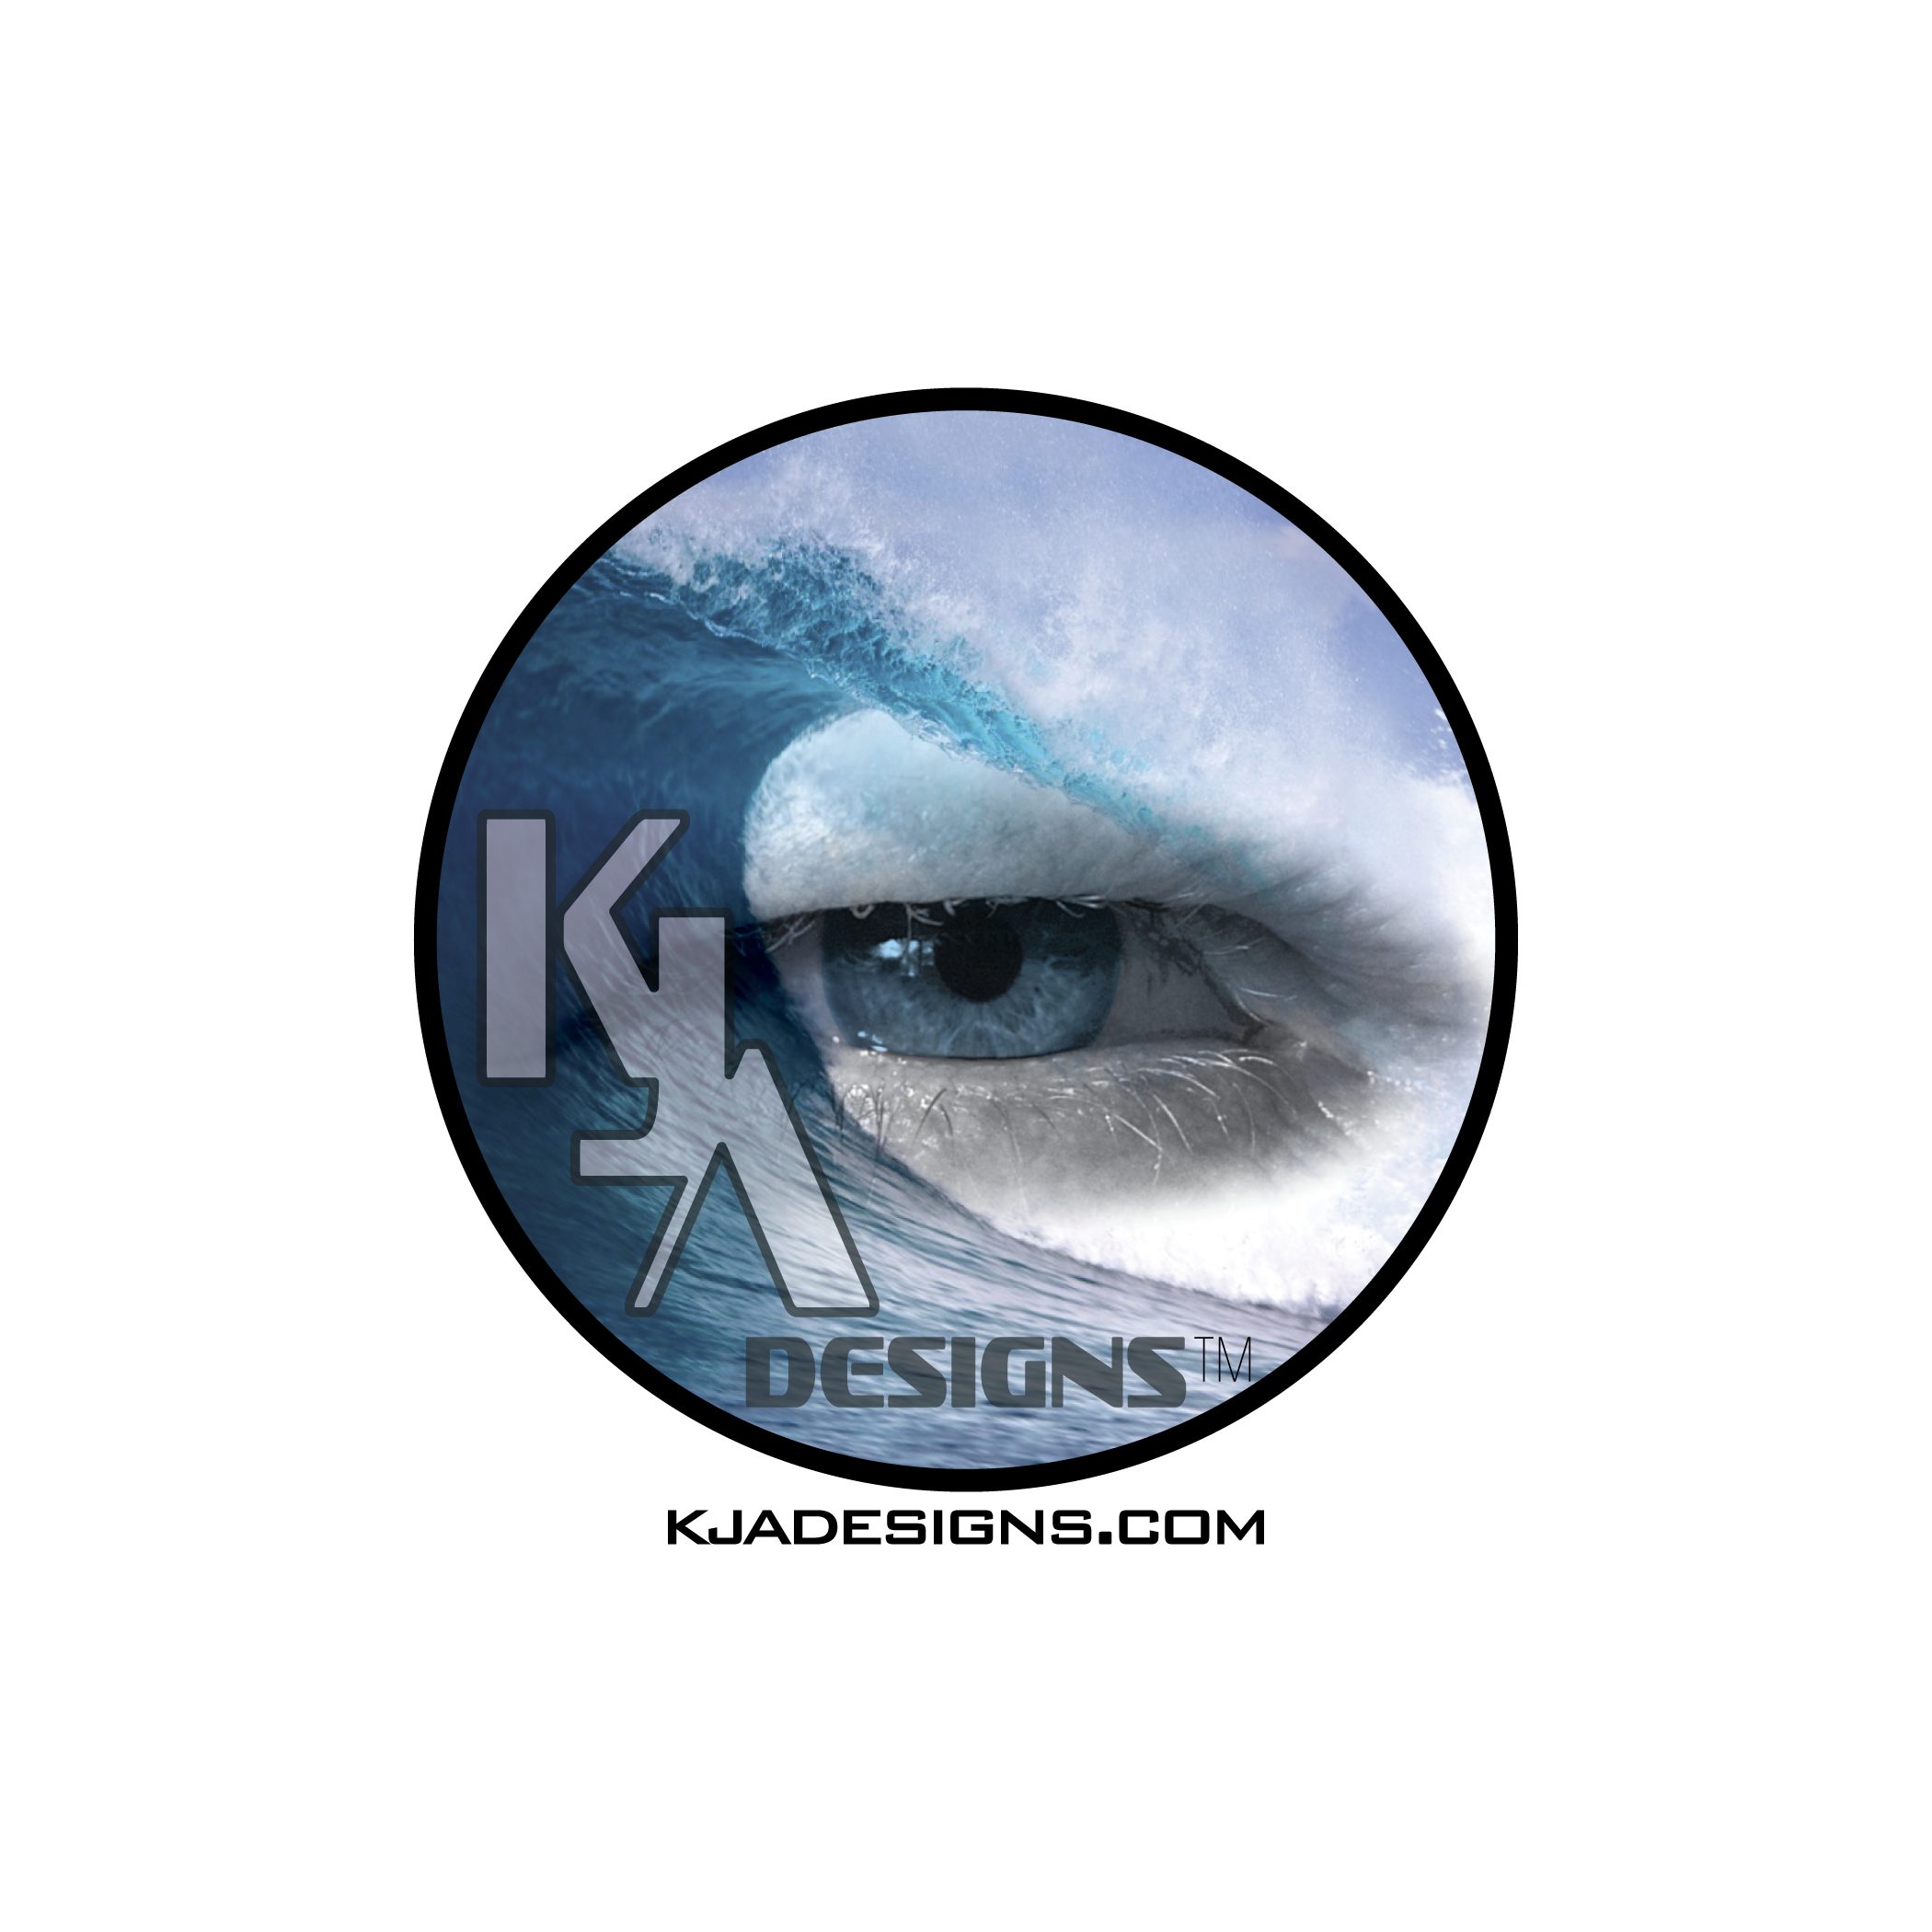 KJA Designs Inc.™ eye 2A